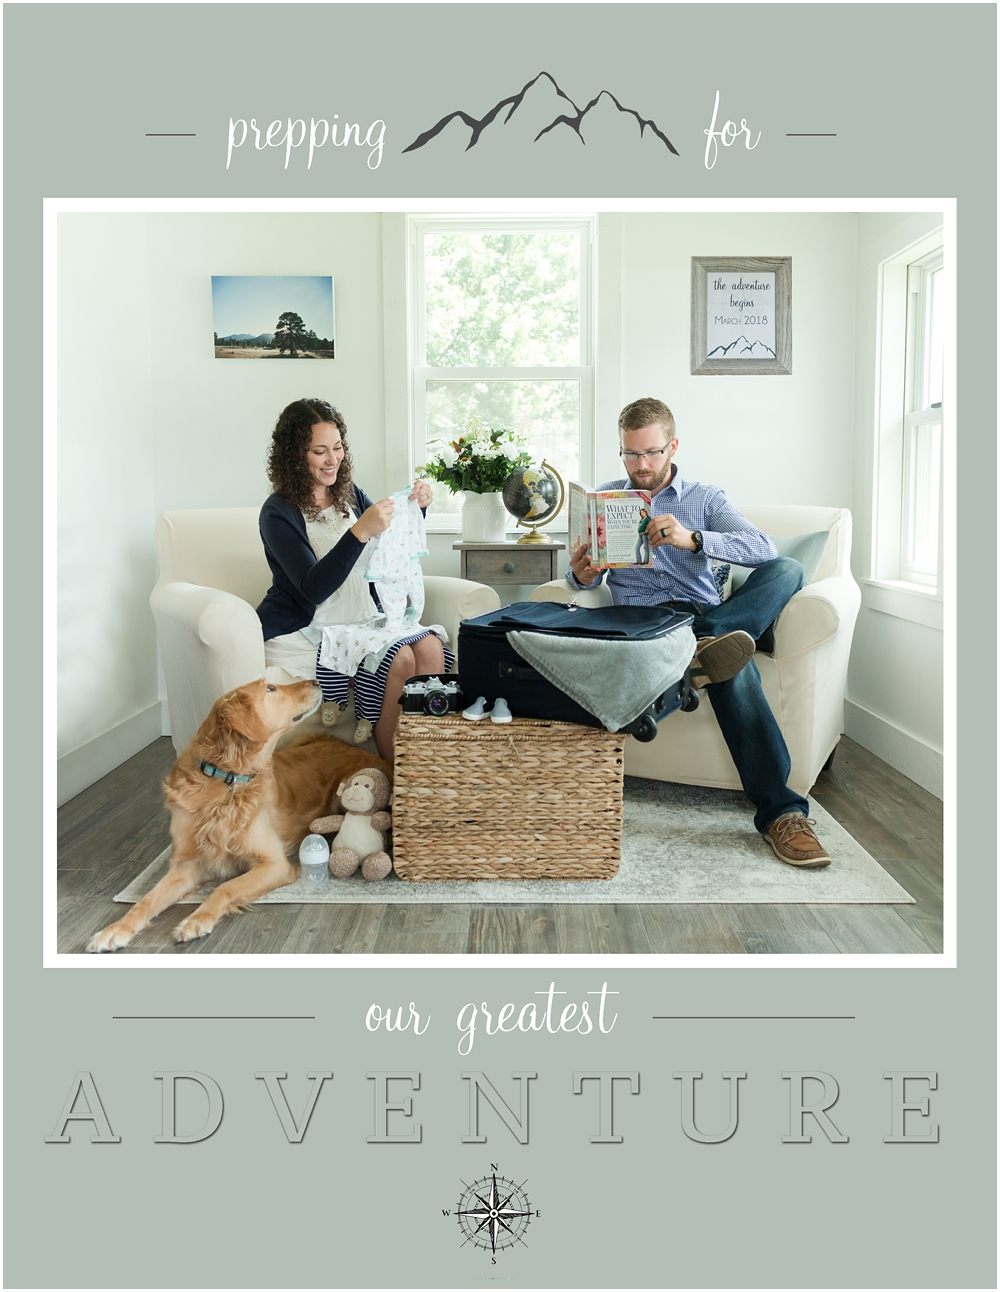 Travel Adventure Themed Pregnancy Announcement Poster_Jackson Signature Photography_0001.jpg